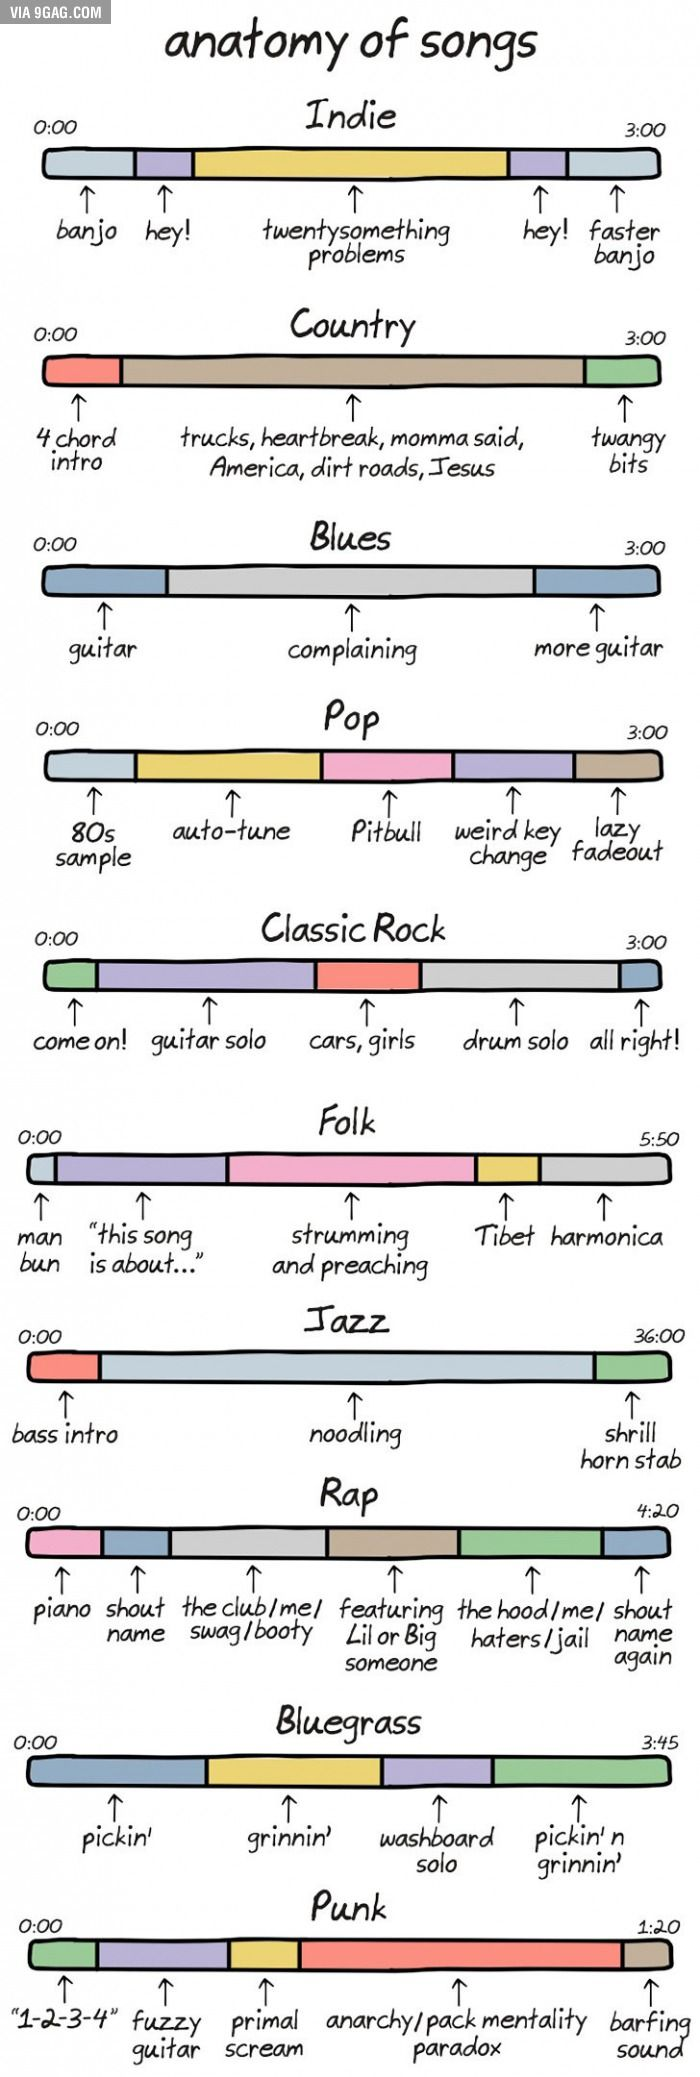 Anatomy of Songs | Everything music | Pinterest | Anatomy, Songs and ...